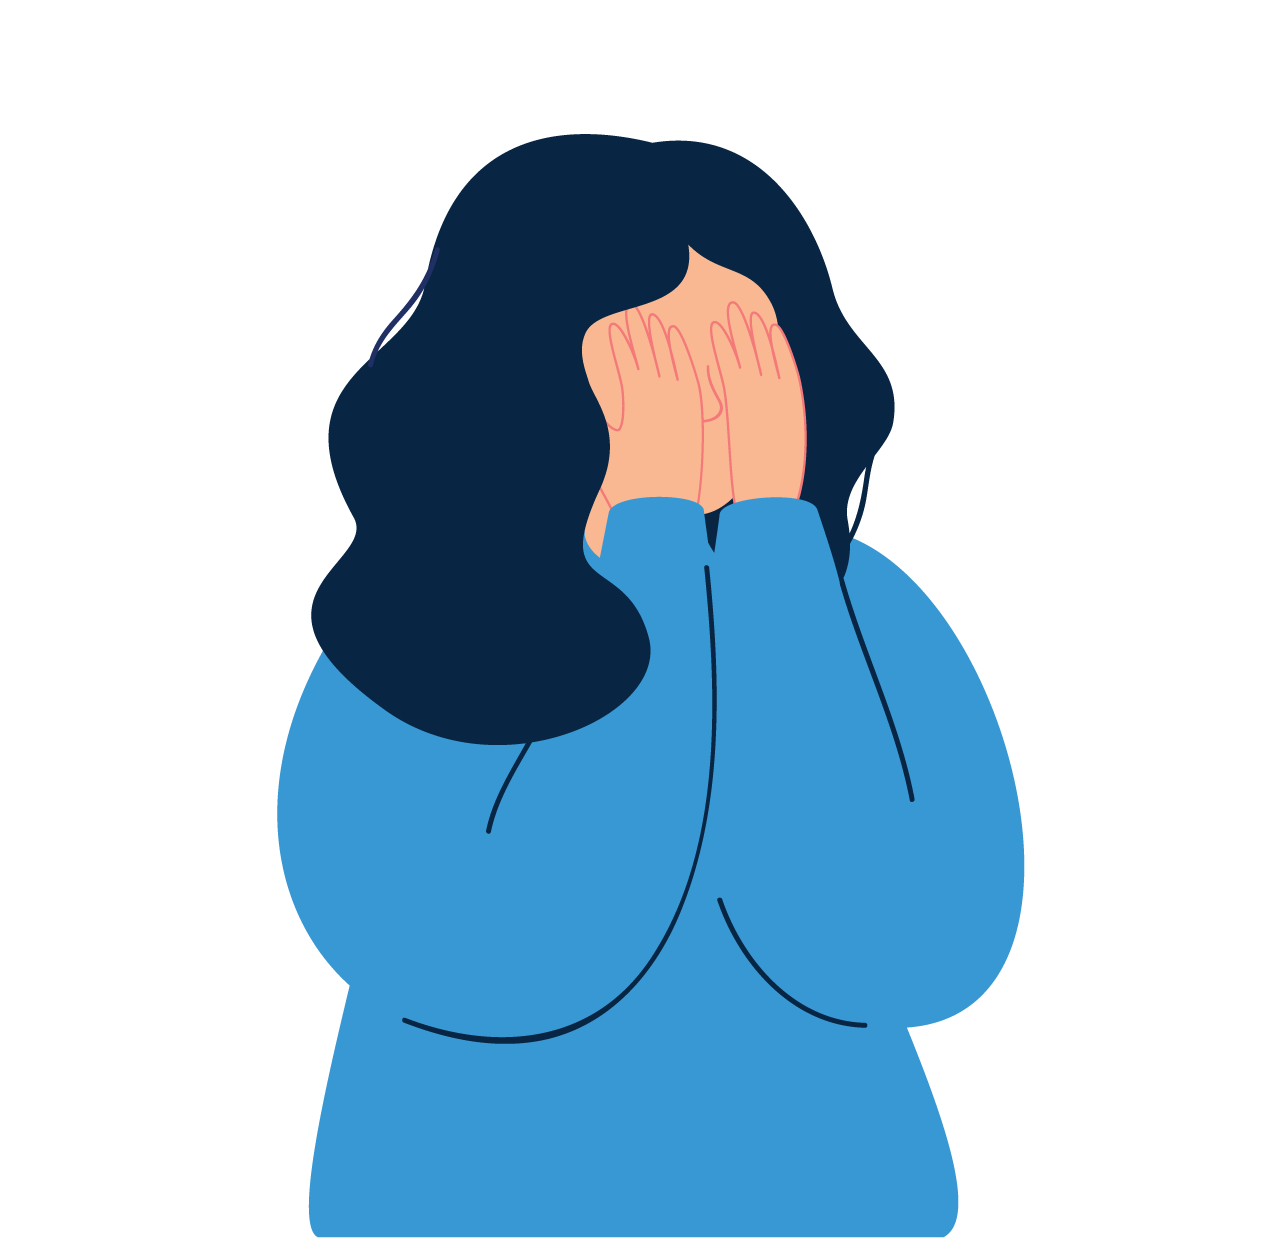 Female Student dealing with mental health issues - vector